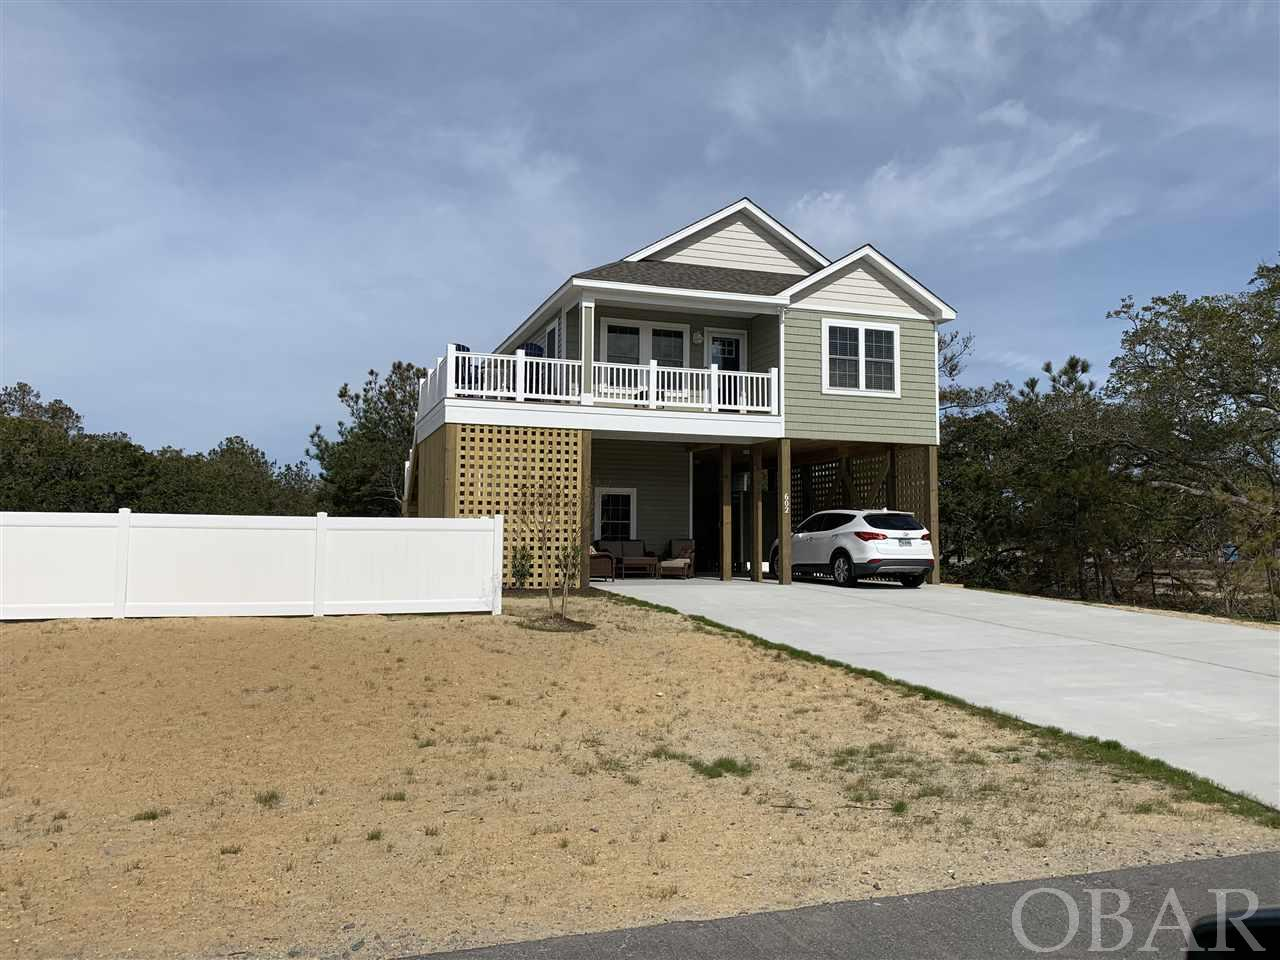 602 Palmetto Street, Kill Devil Hills, NC 27948, 4 Bedrooms Bedrooms, ,3 BathroomsBathrooms,Residential,For sale,Palmetto Street,108628